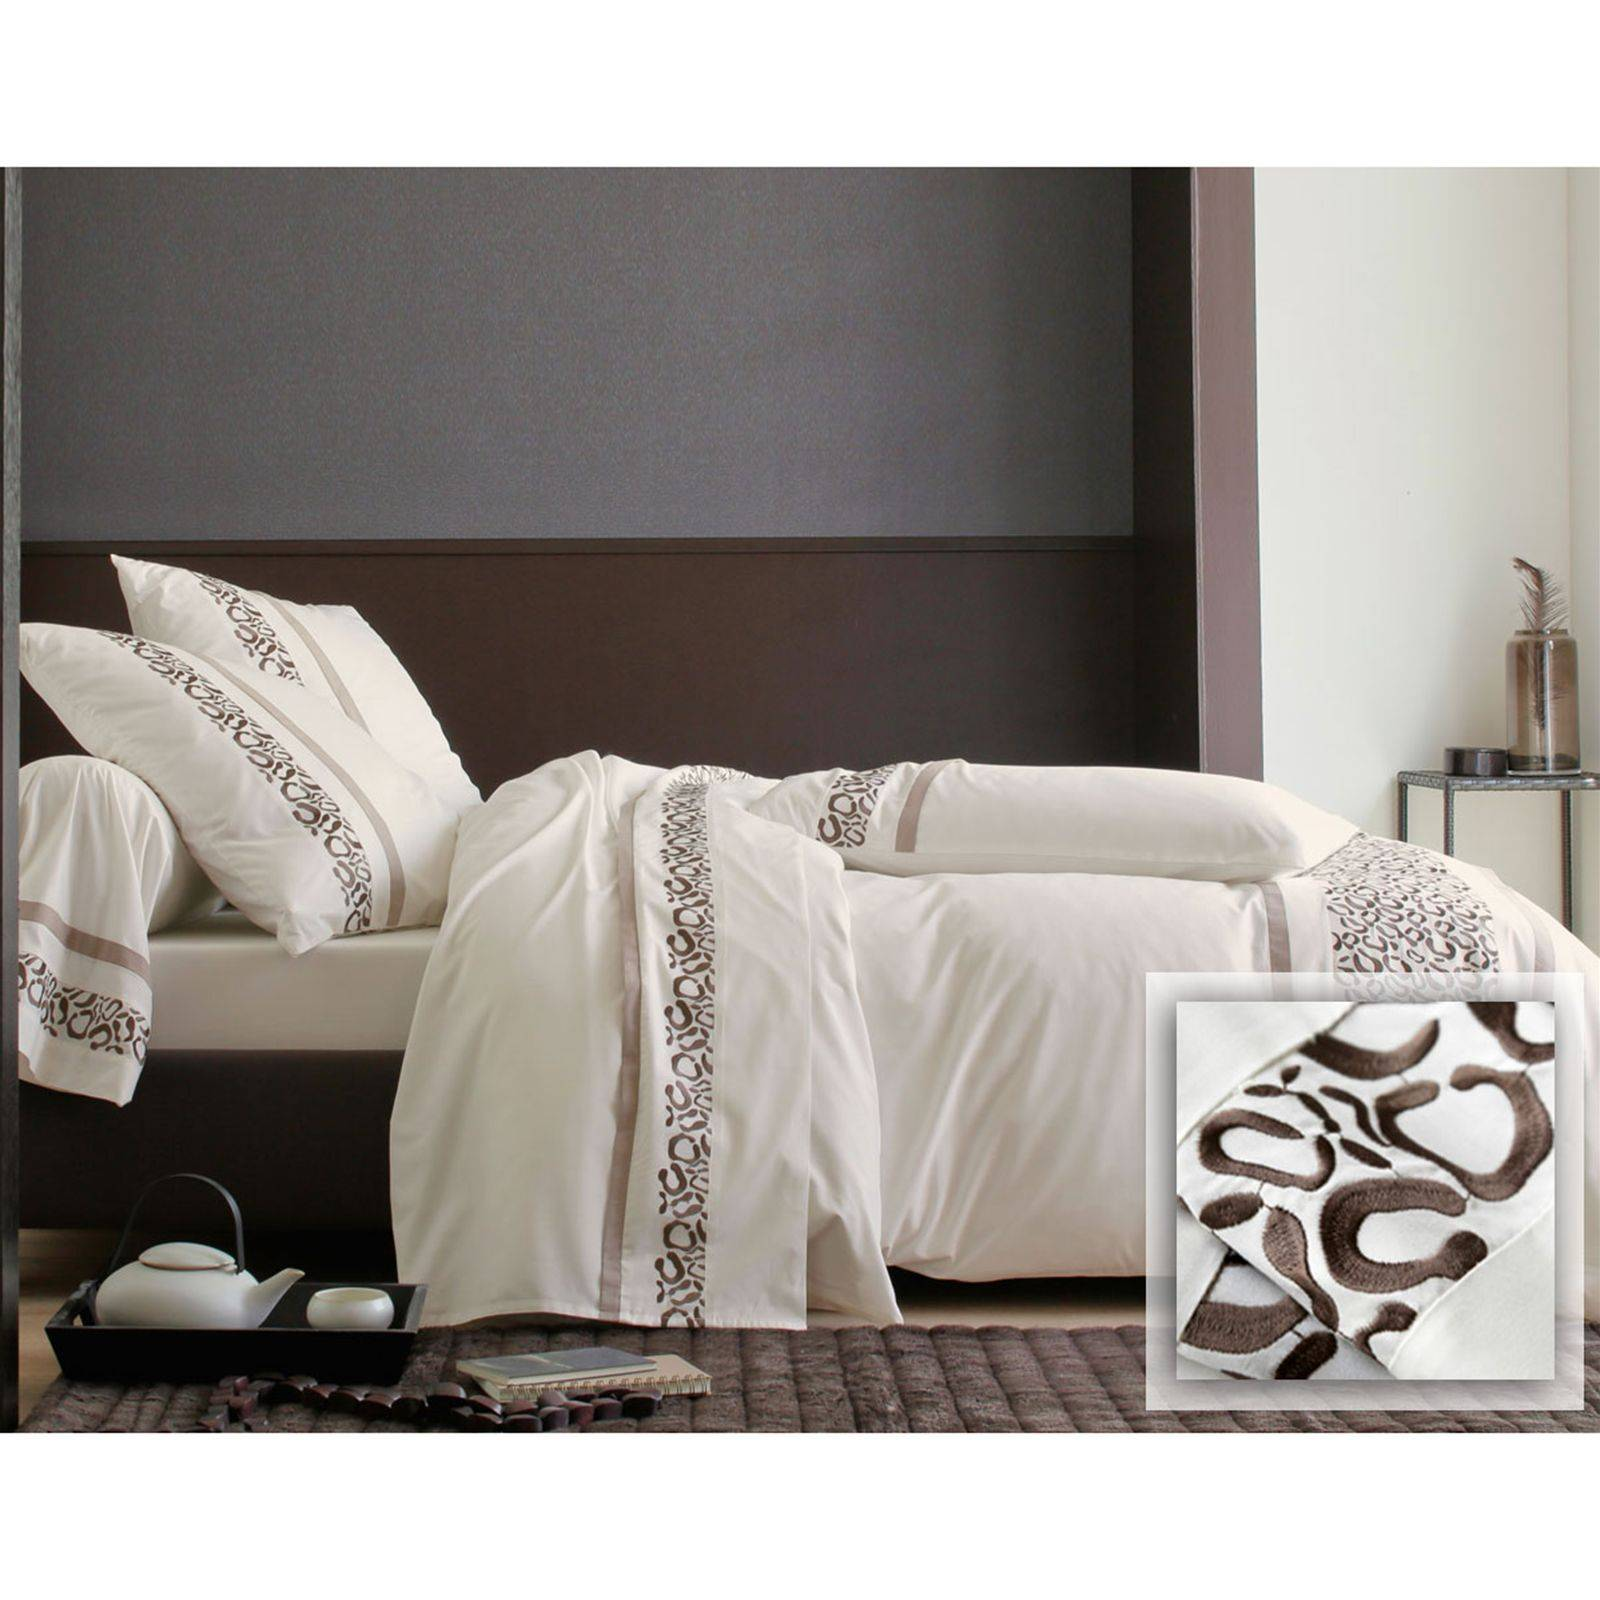 becquet housse de couette percale motif l opard brod. Black Bedroom Furniture Sets. Home Design Ideas